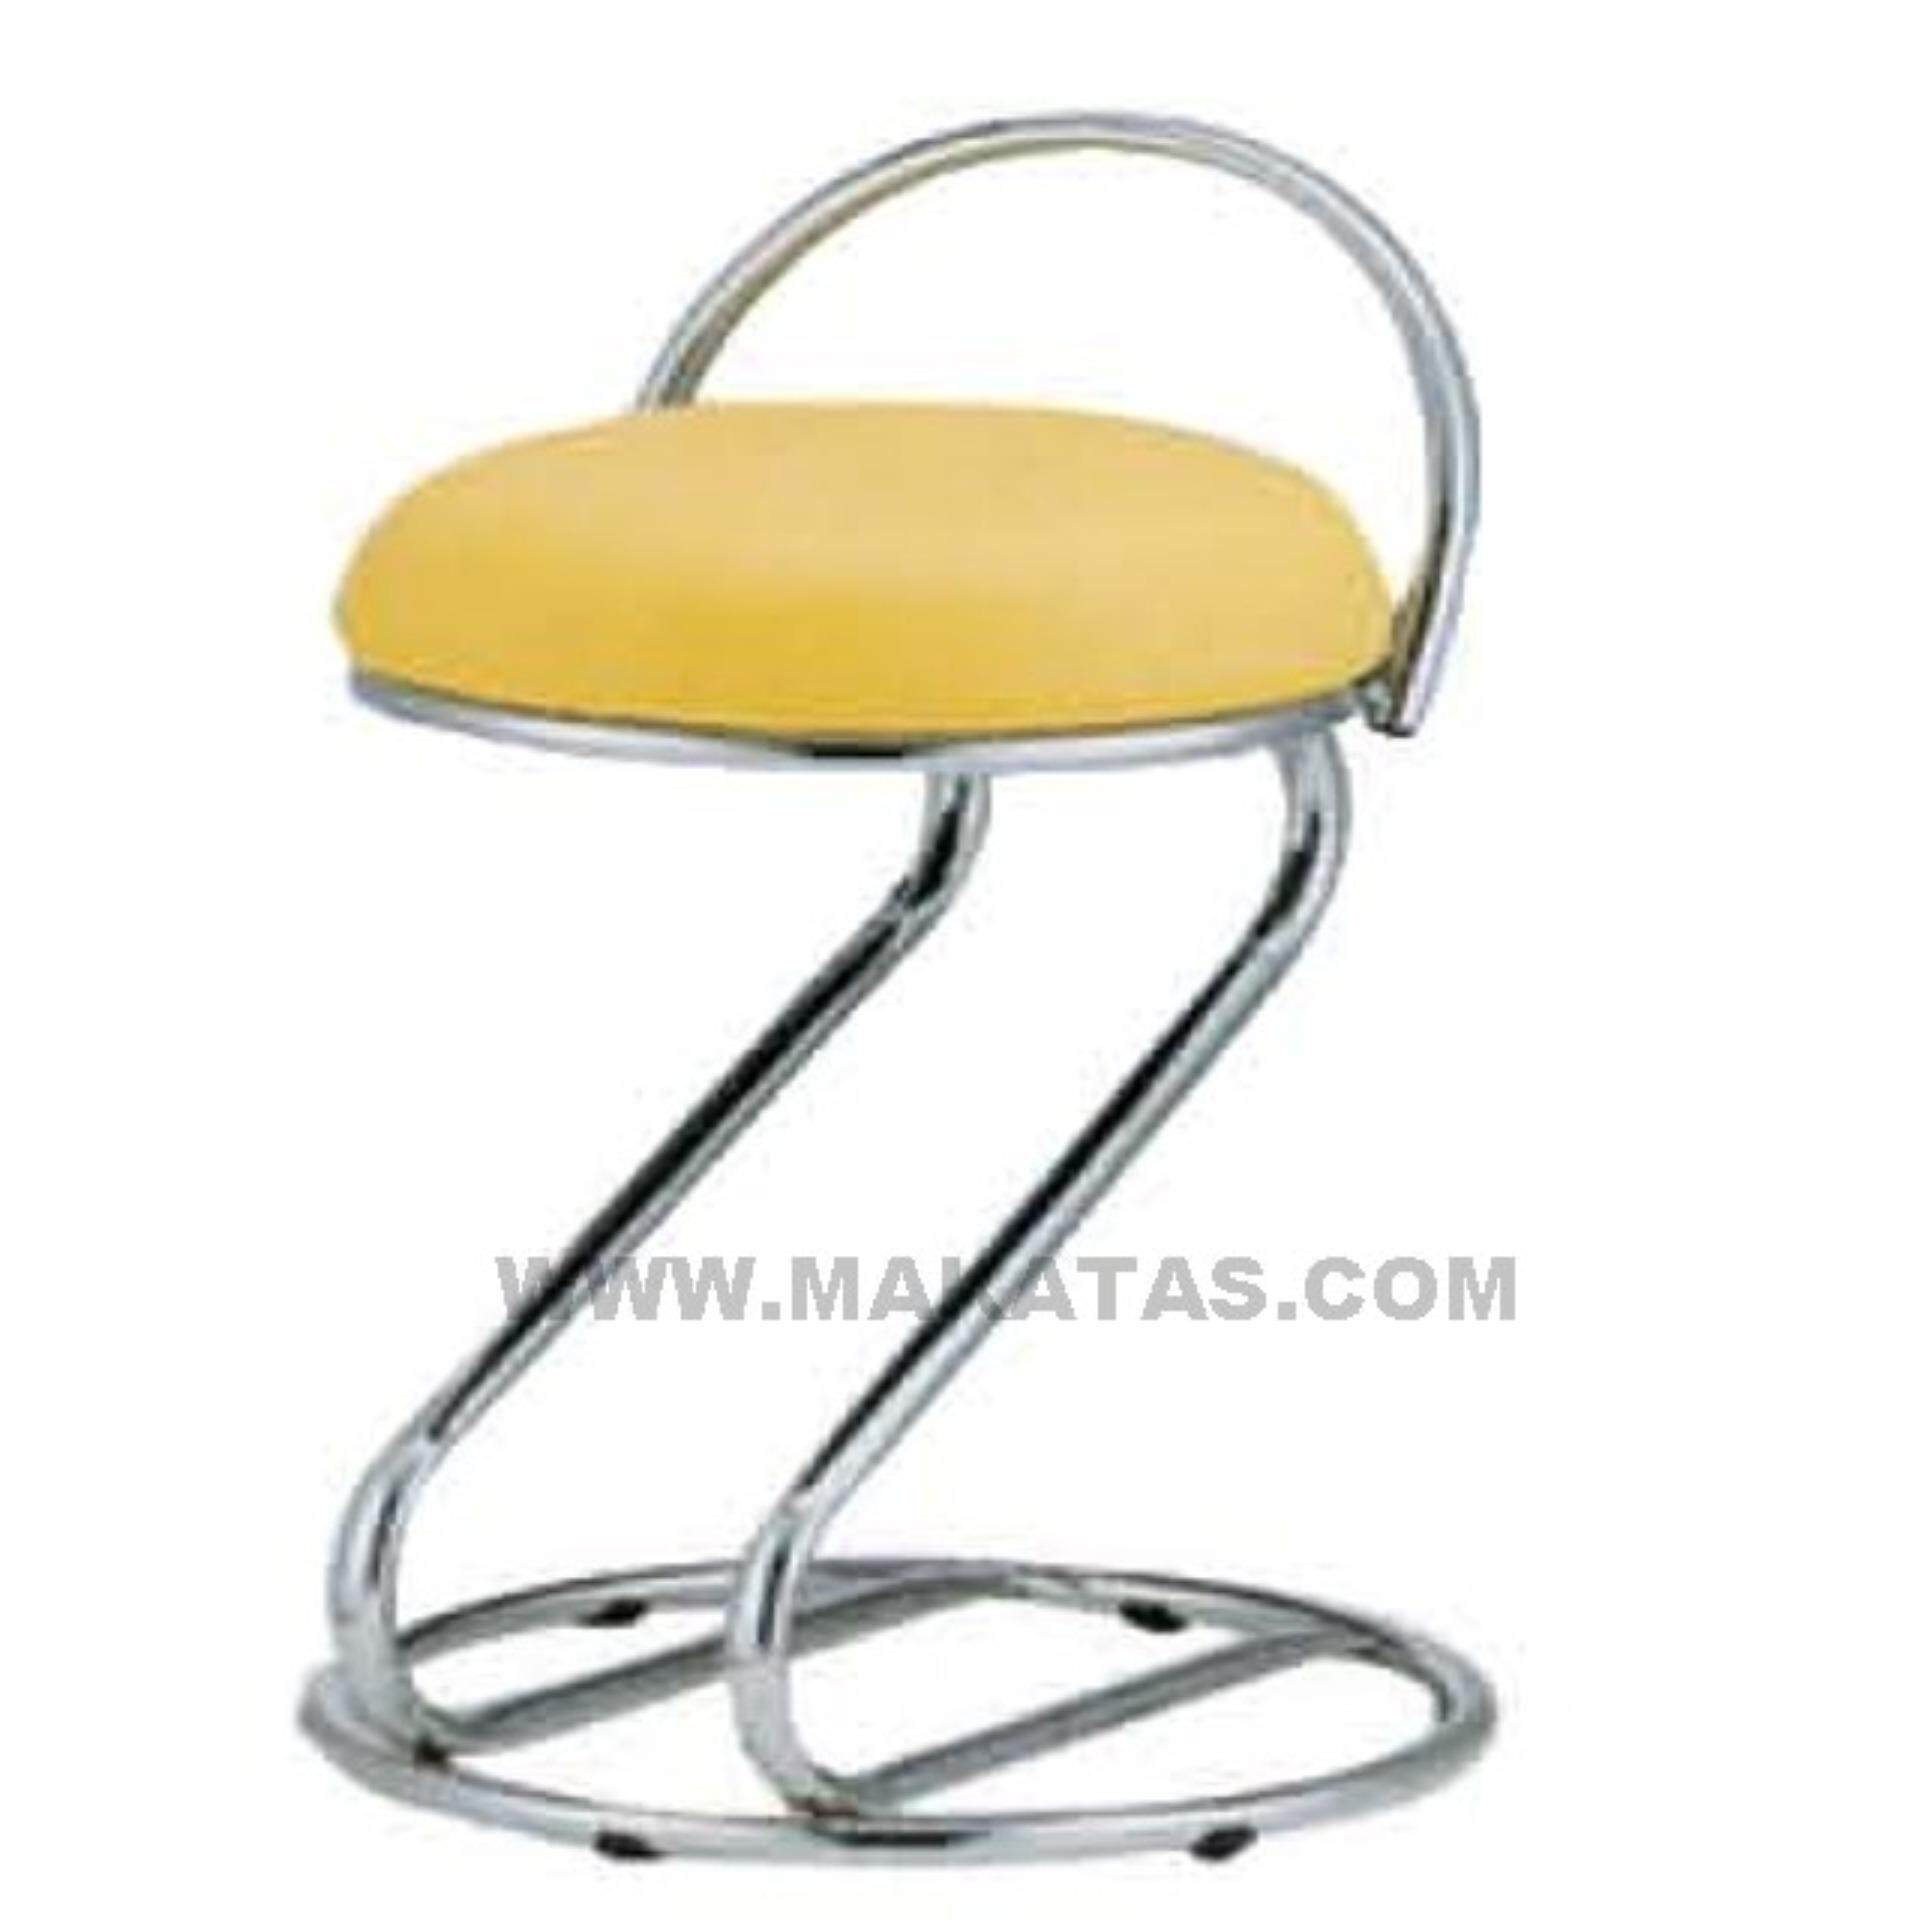 Office Furniture | Office Chair | Makatas Barstoll Low Bar Stool-Chrome